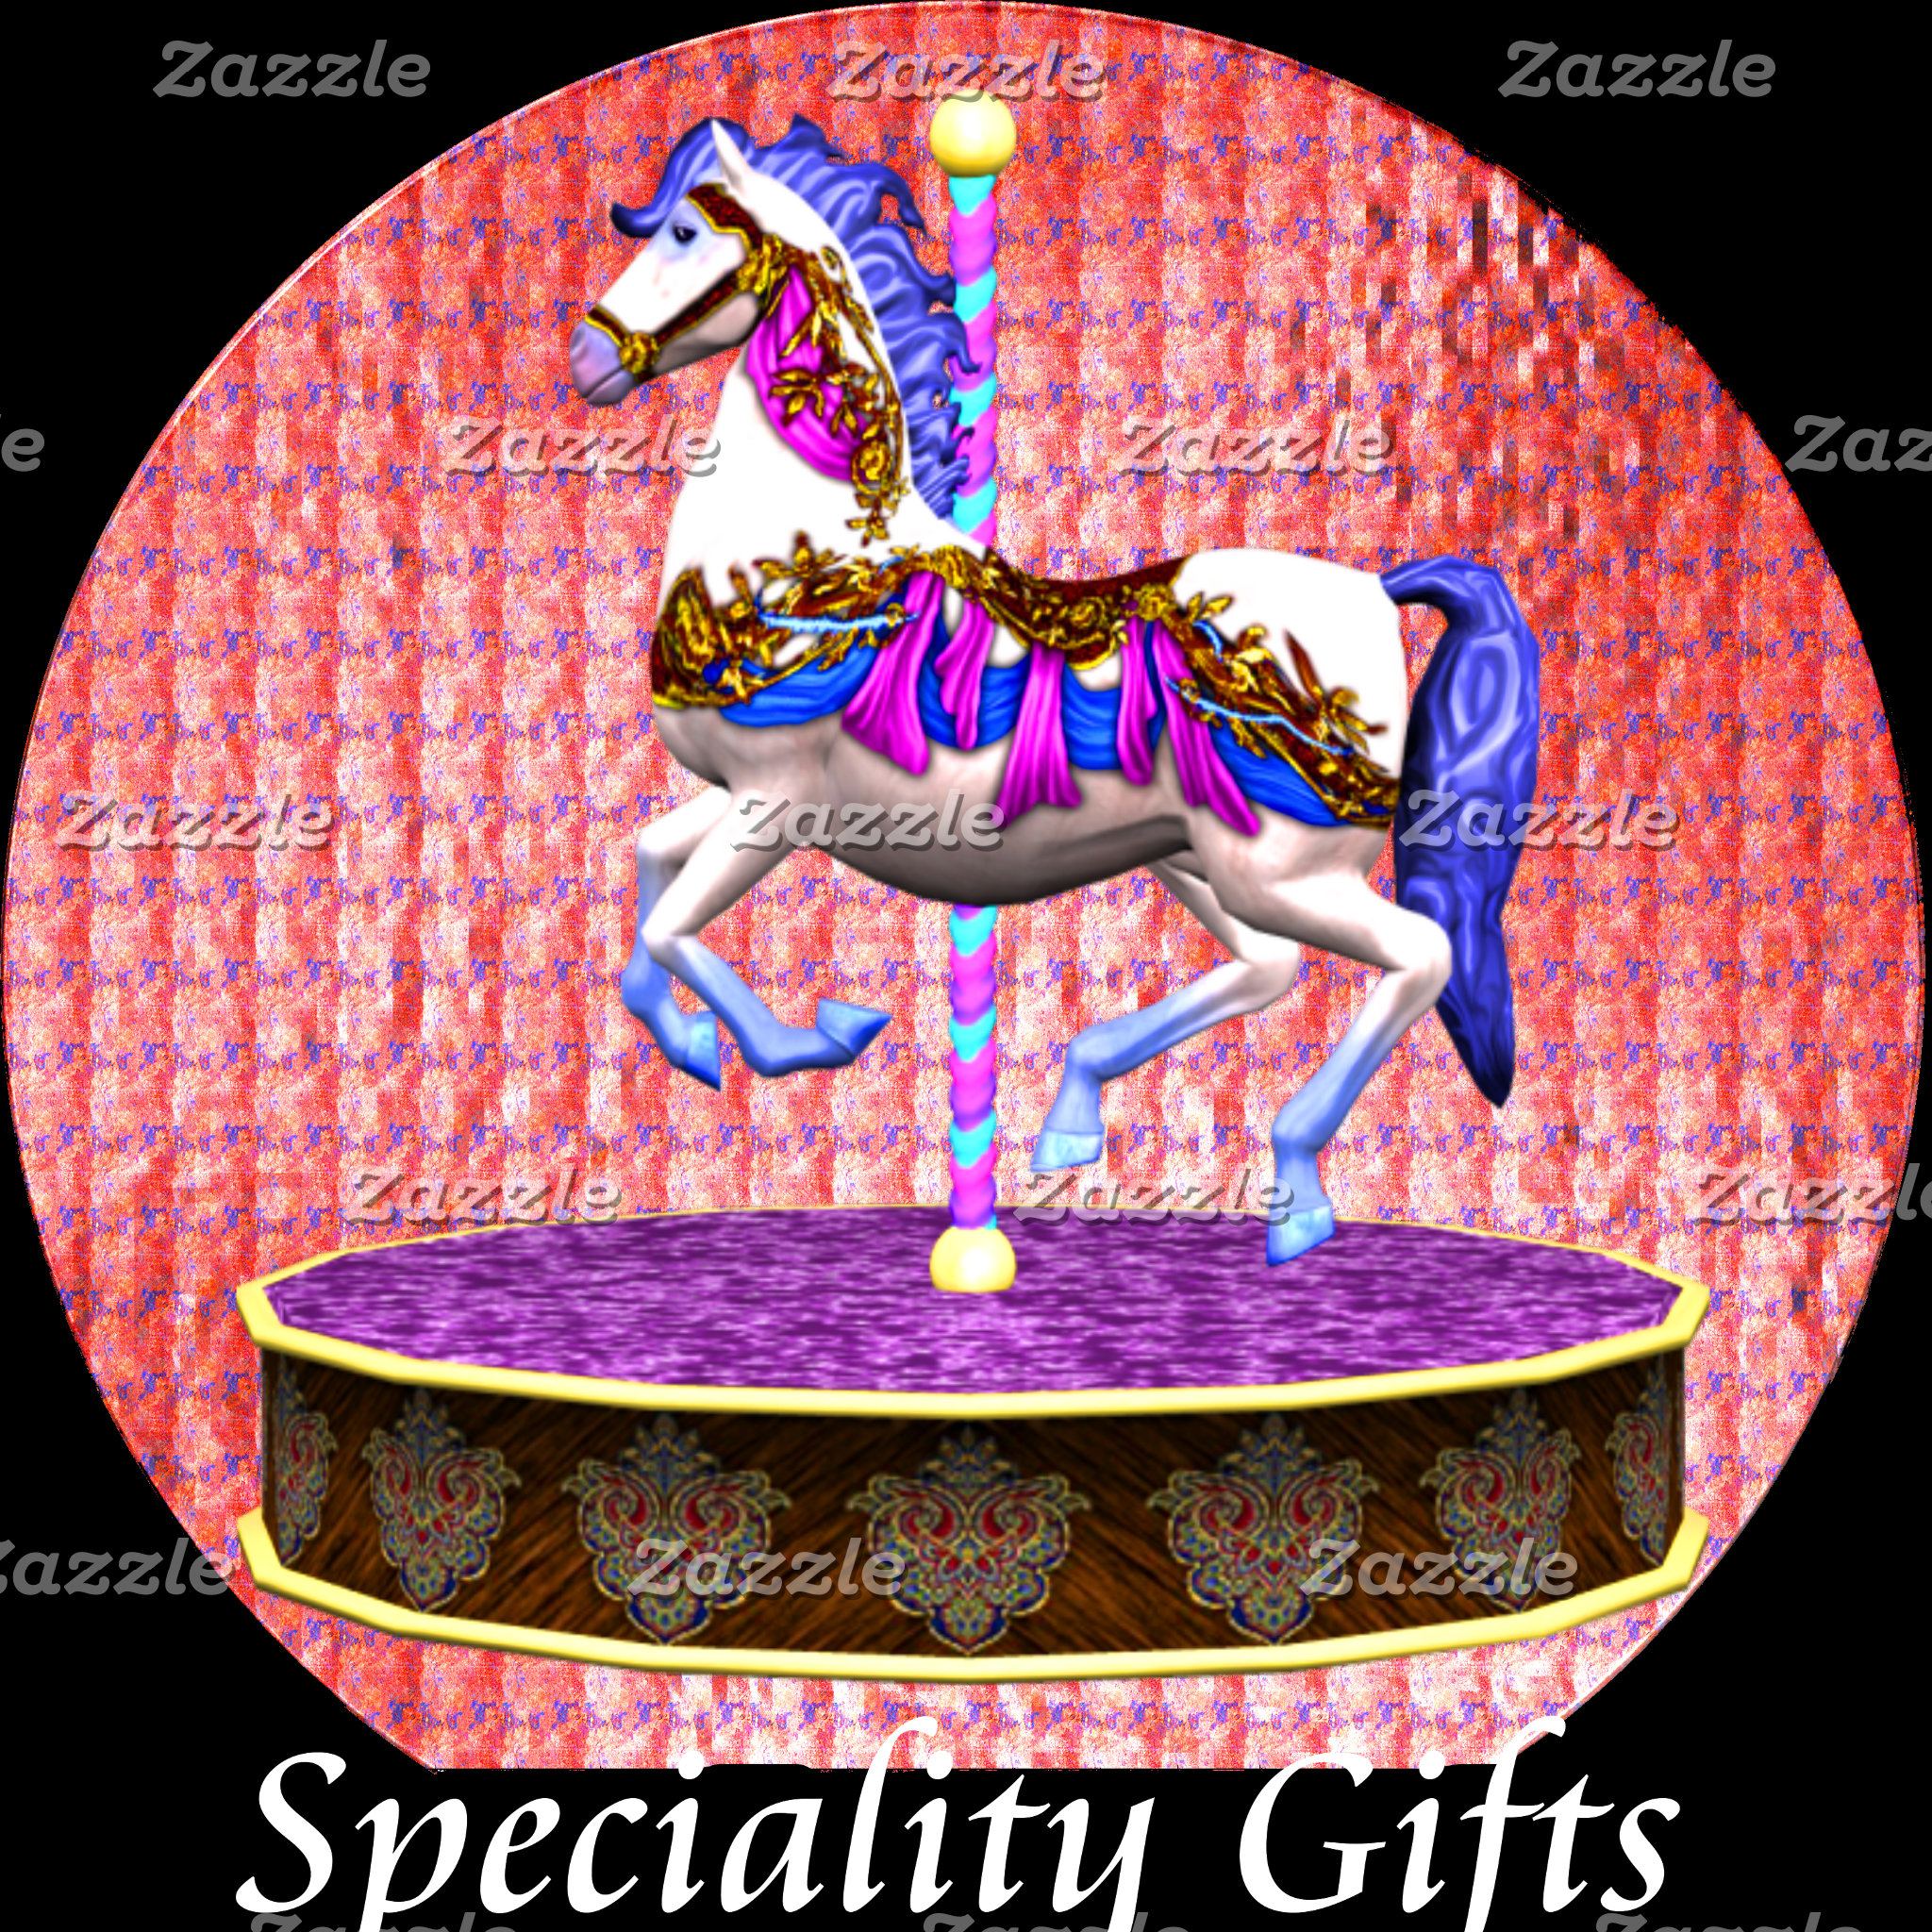 Speciality Gifts